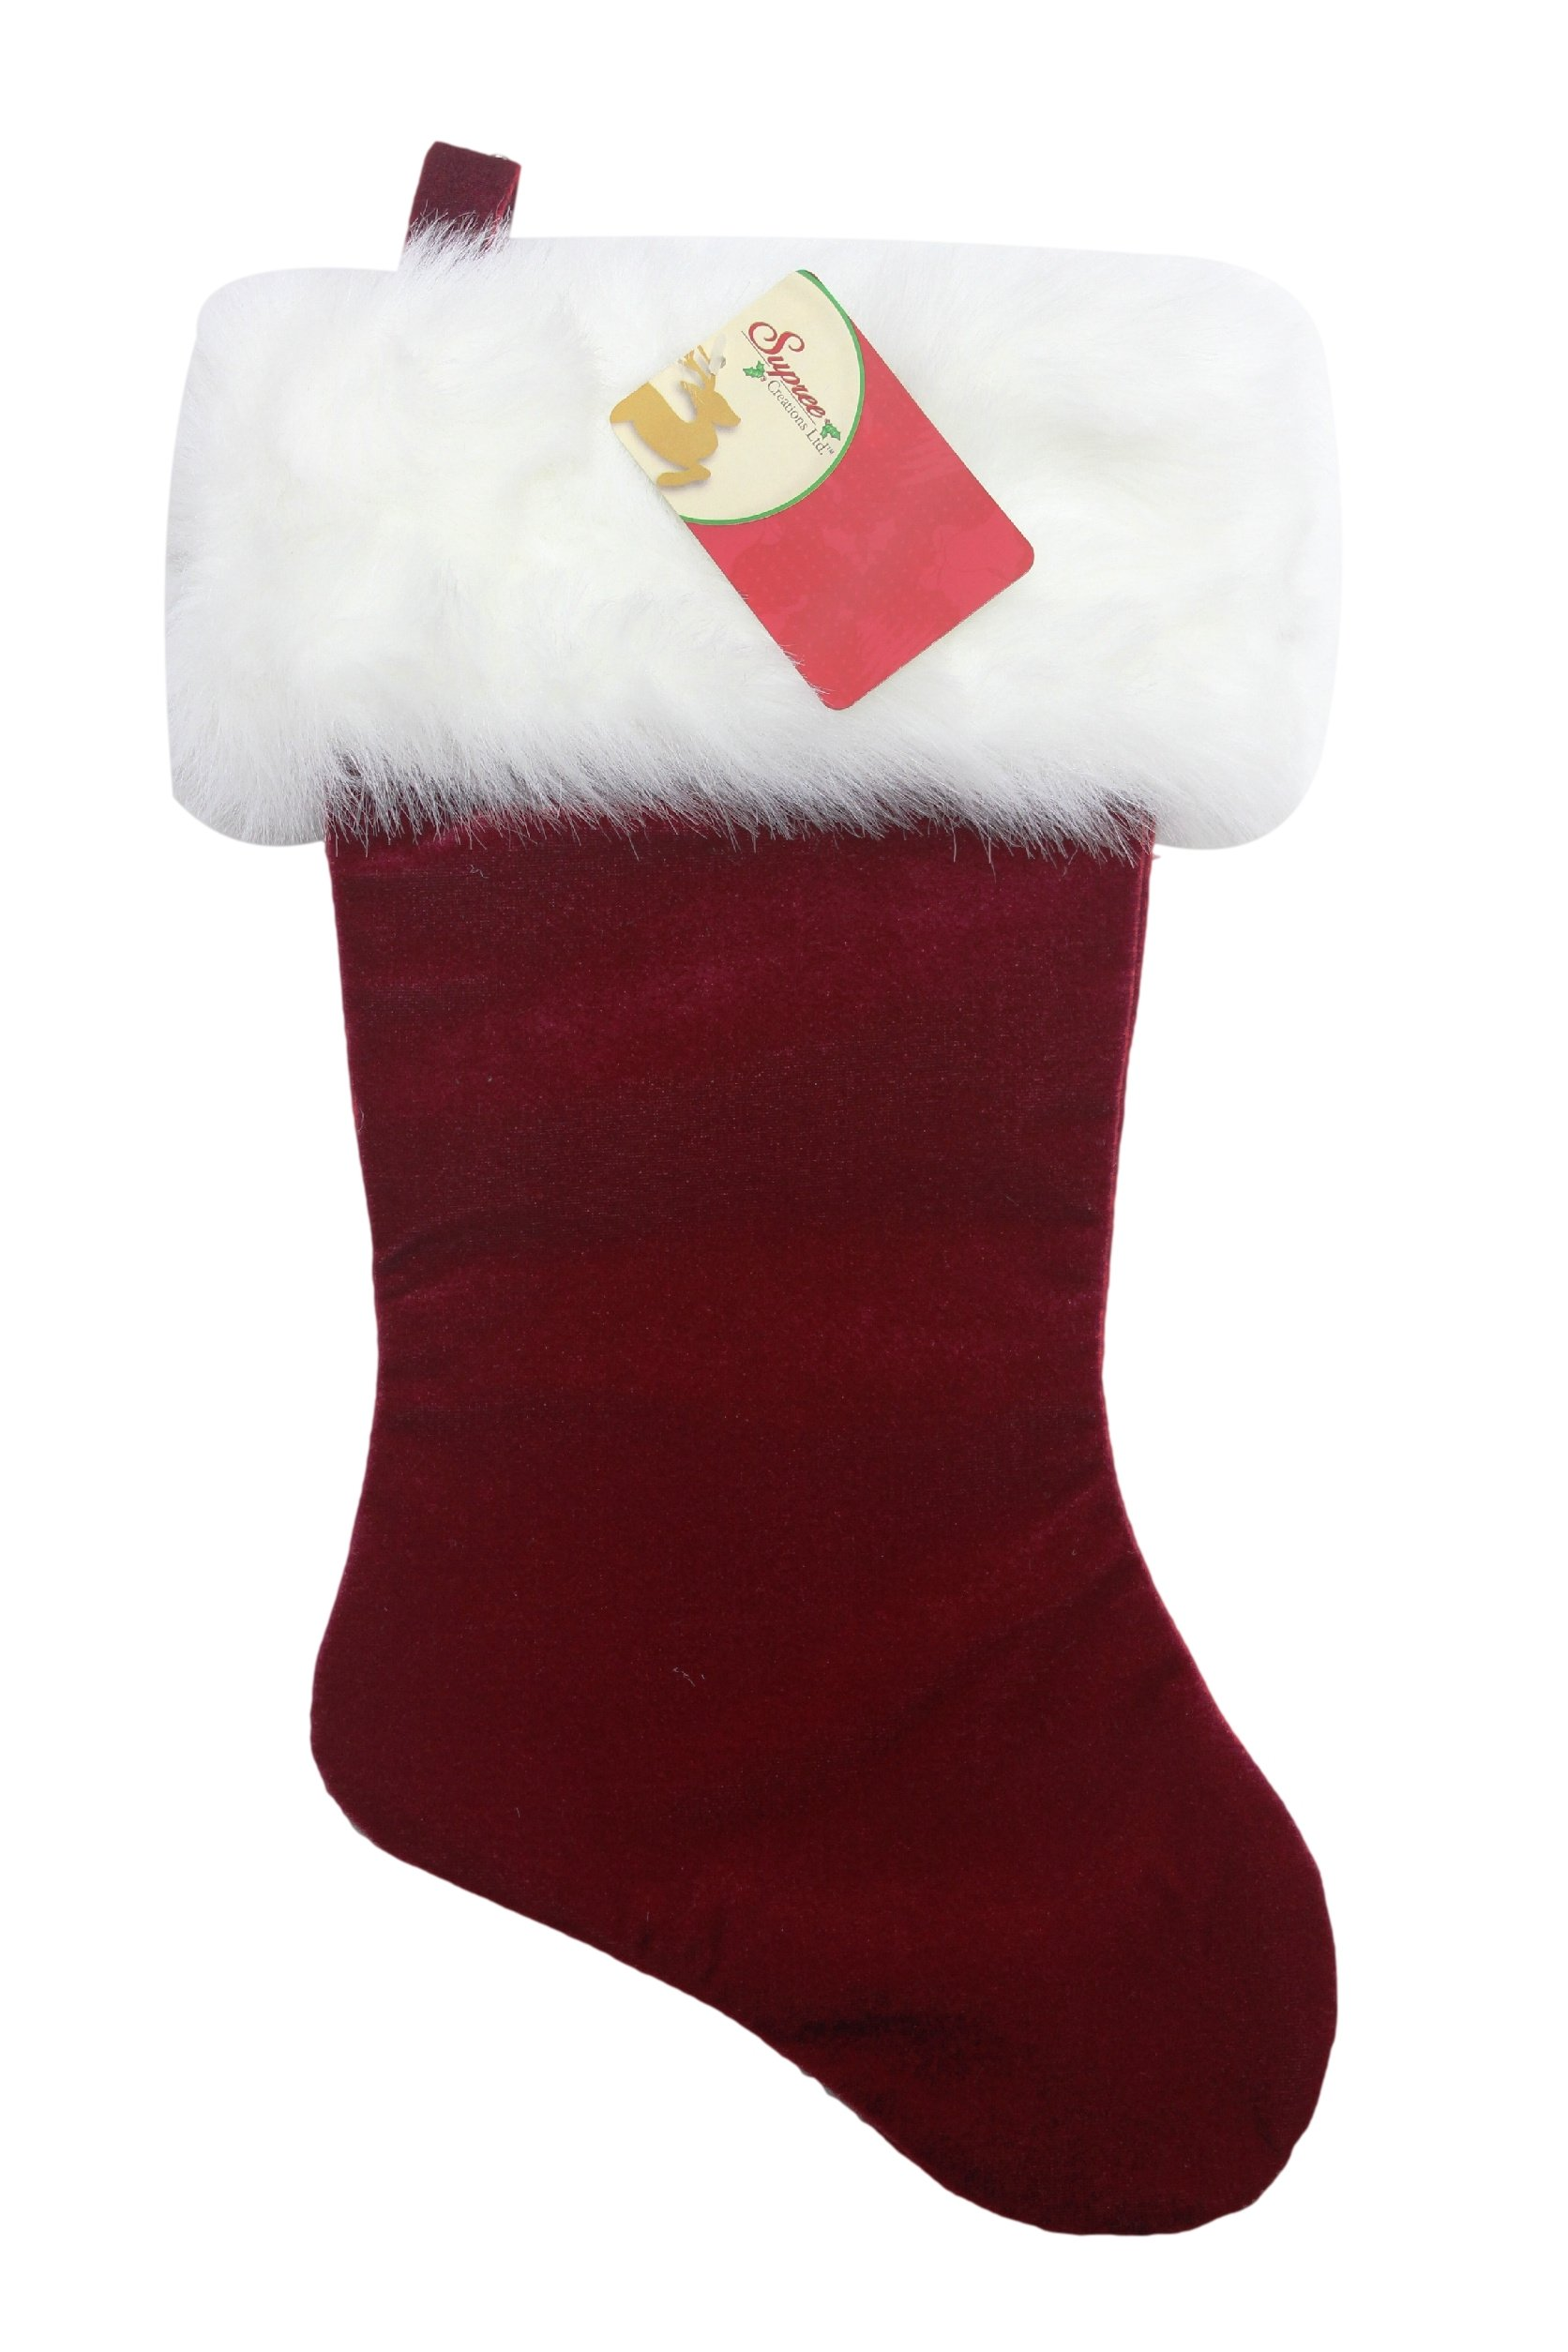 Supree Creation 19'' Christmas Stocking Red Velvet Plush White Fur Trim Holiday Lot of (24) Discount Wholesale